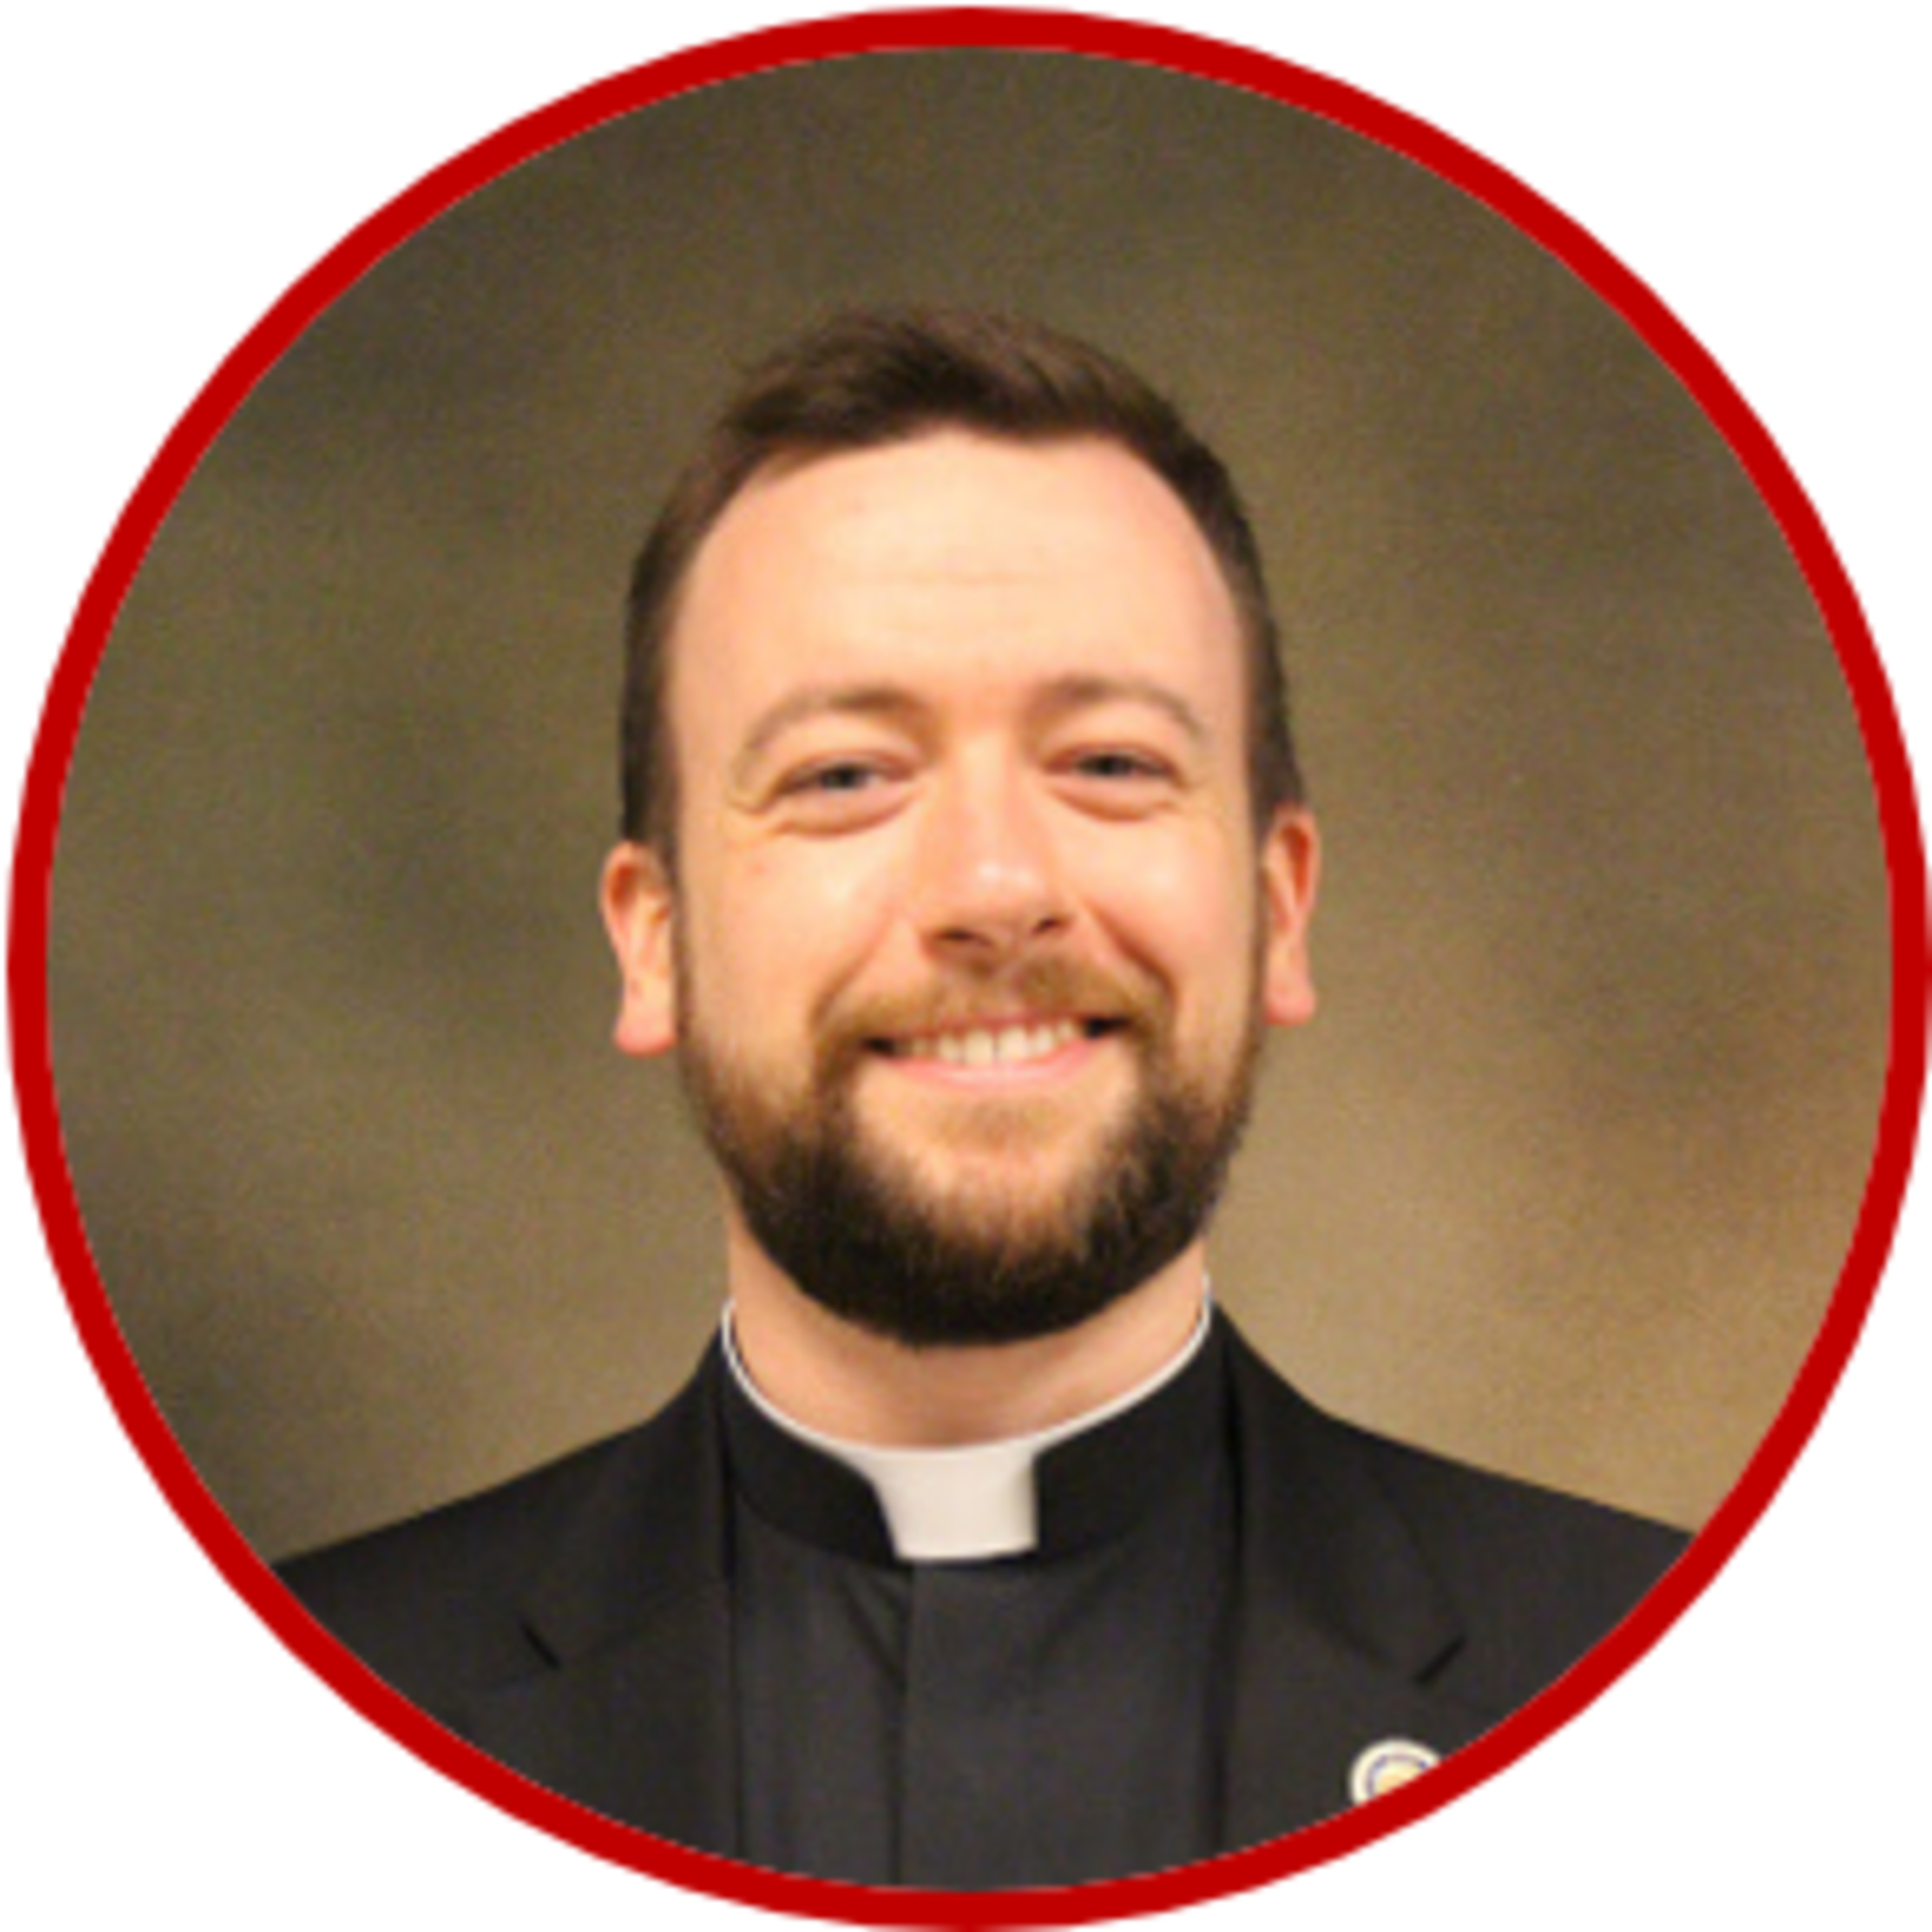 Ascension of the Lord: Fr. Coady Owens